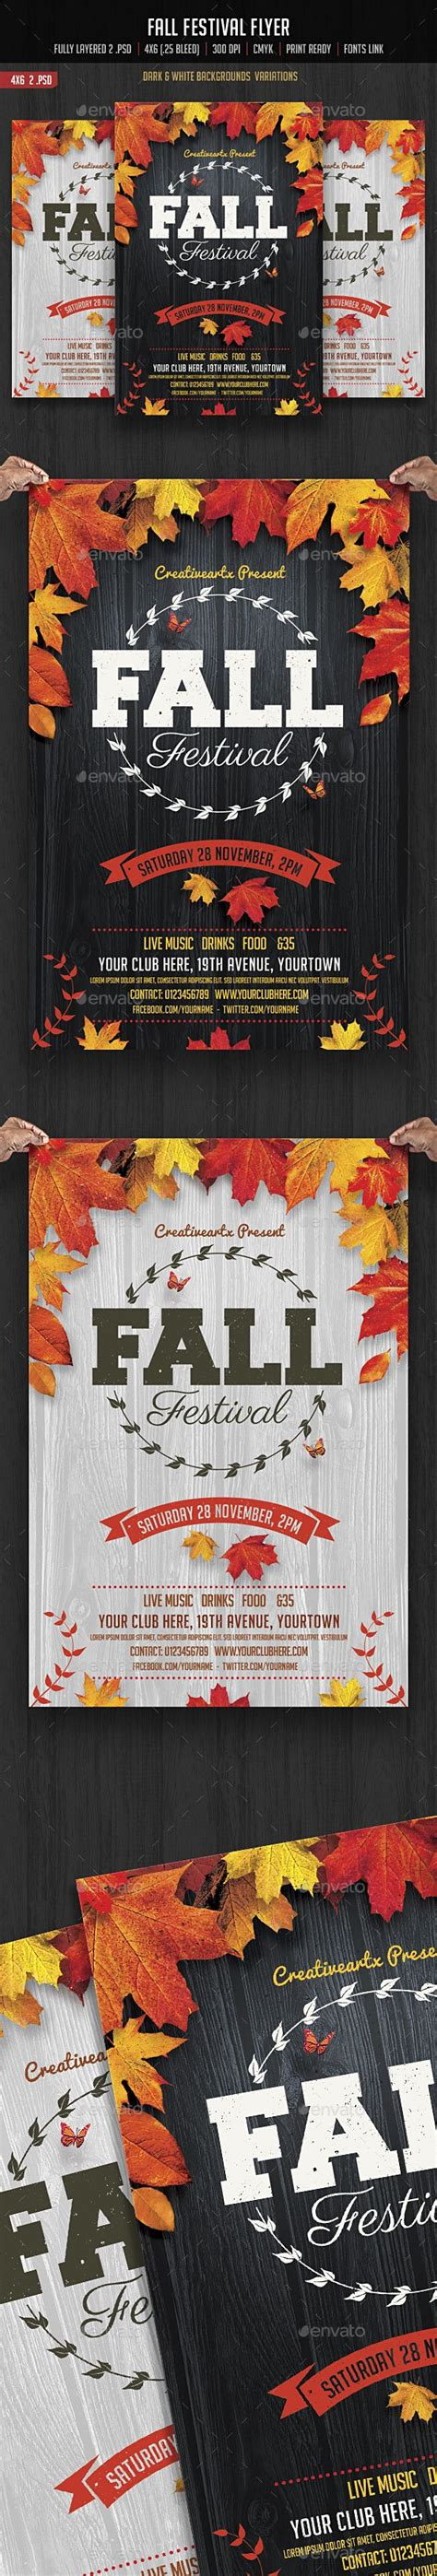 43 curated innovations fall festival ideas by